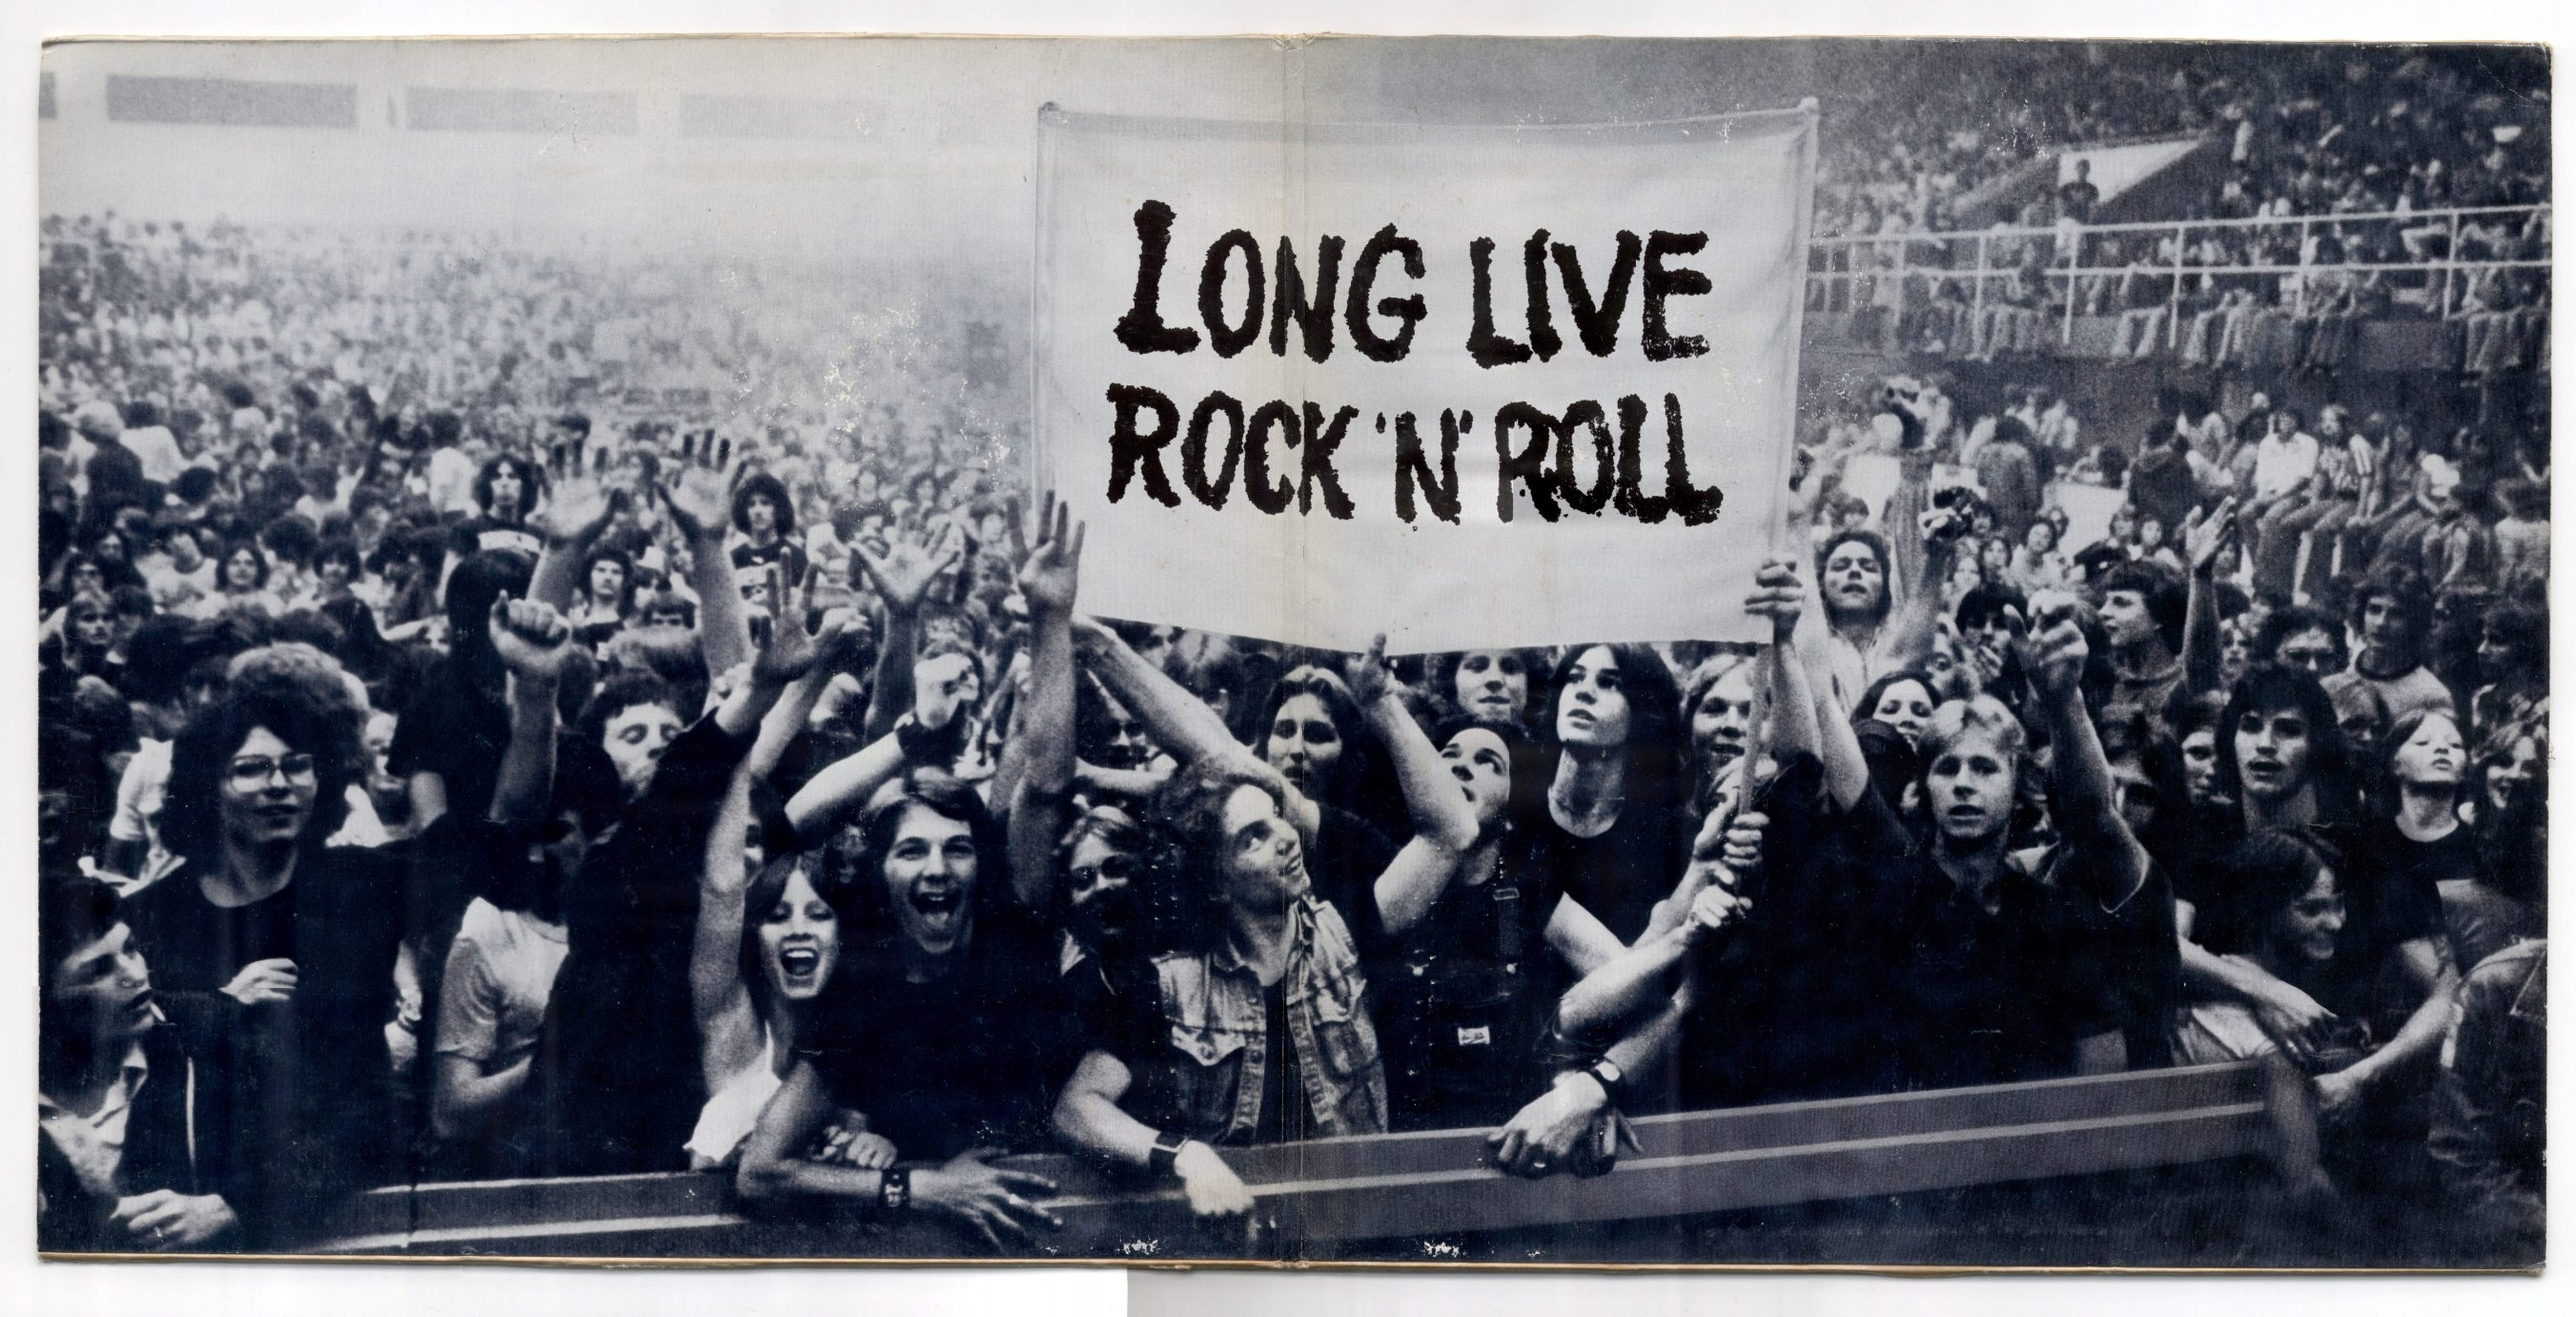 For the Love of Rock 'n' Roll!